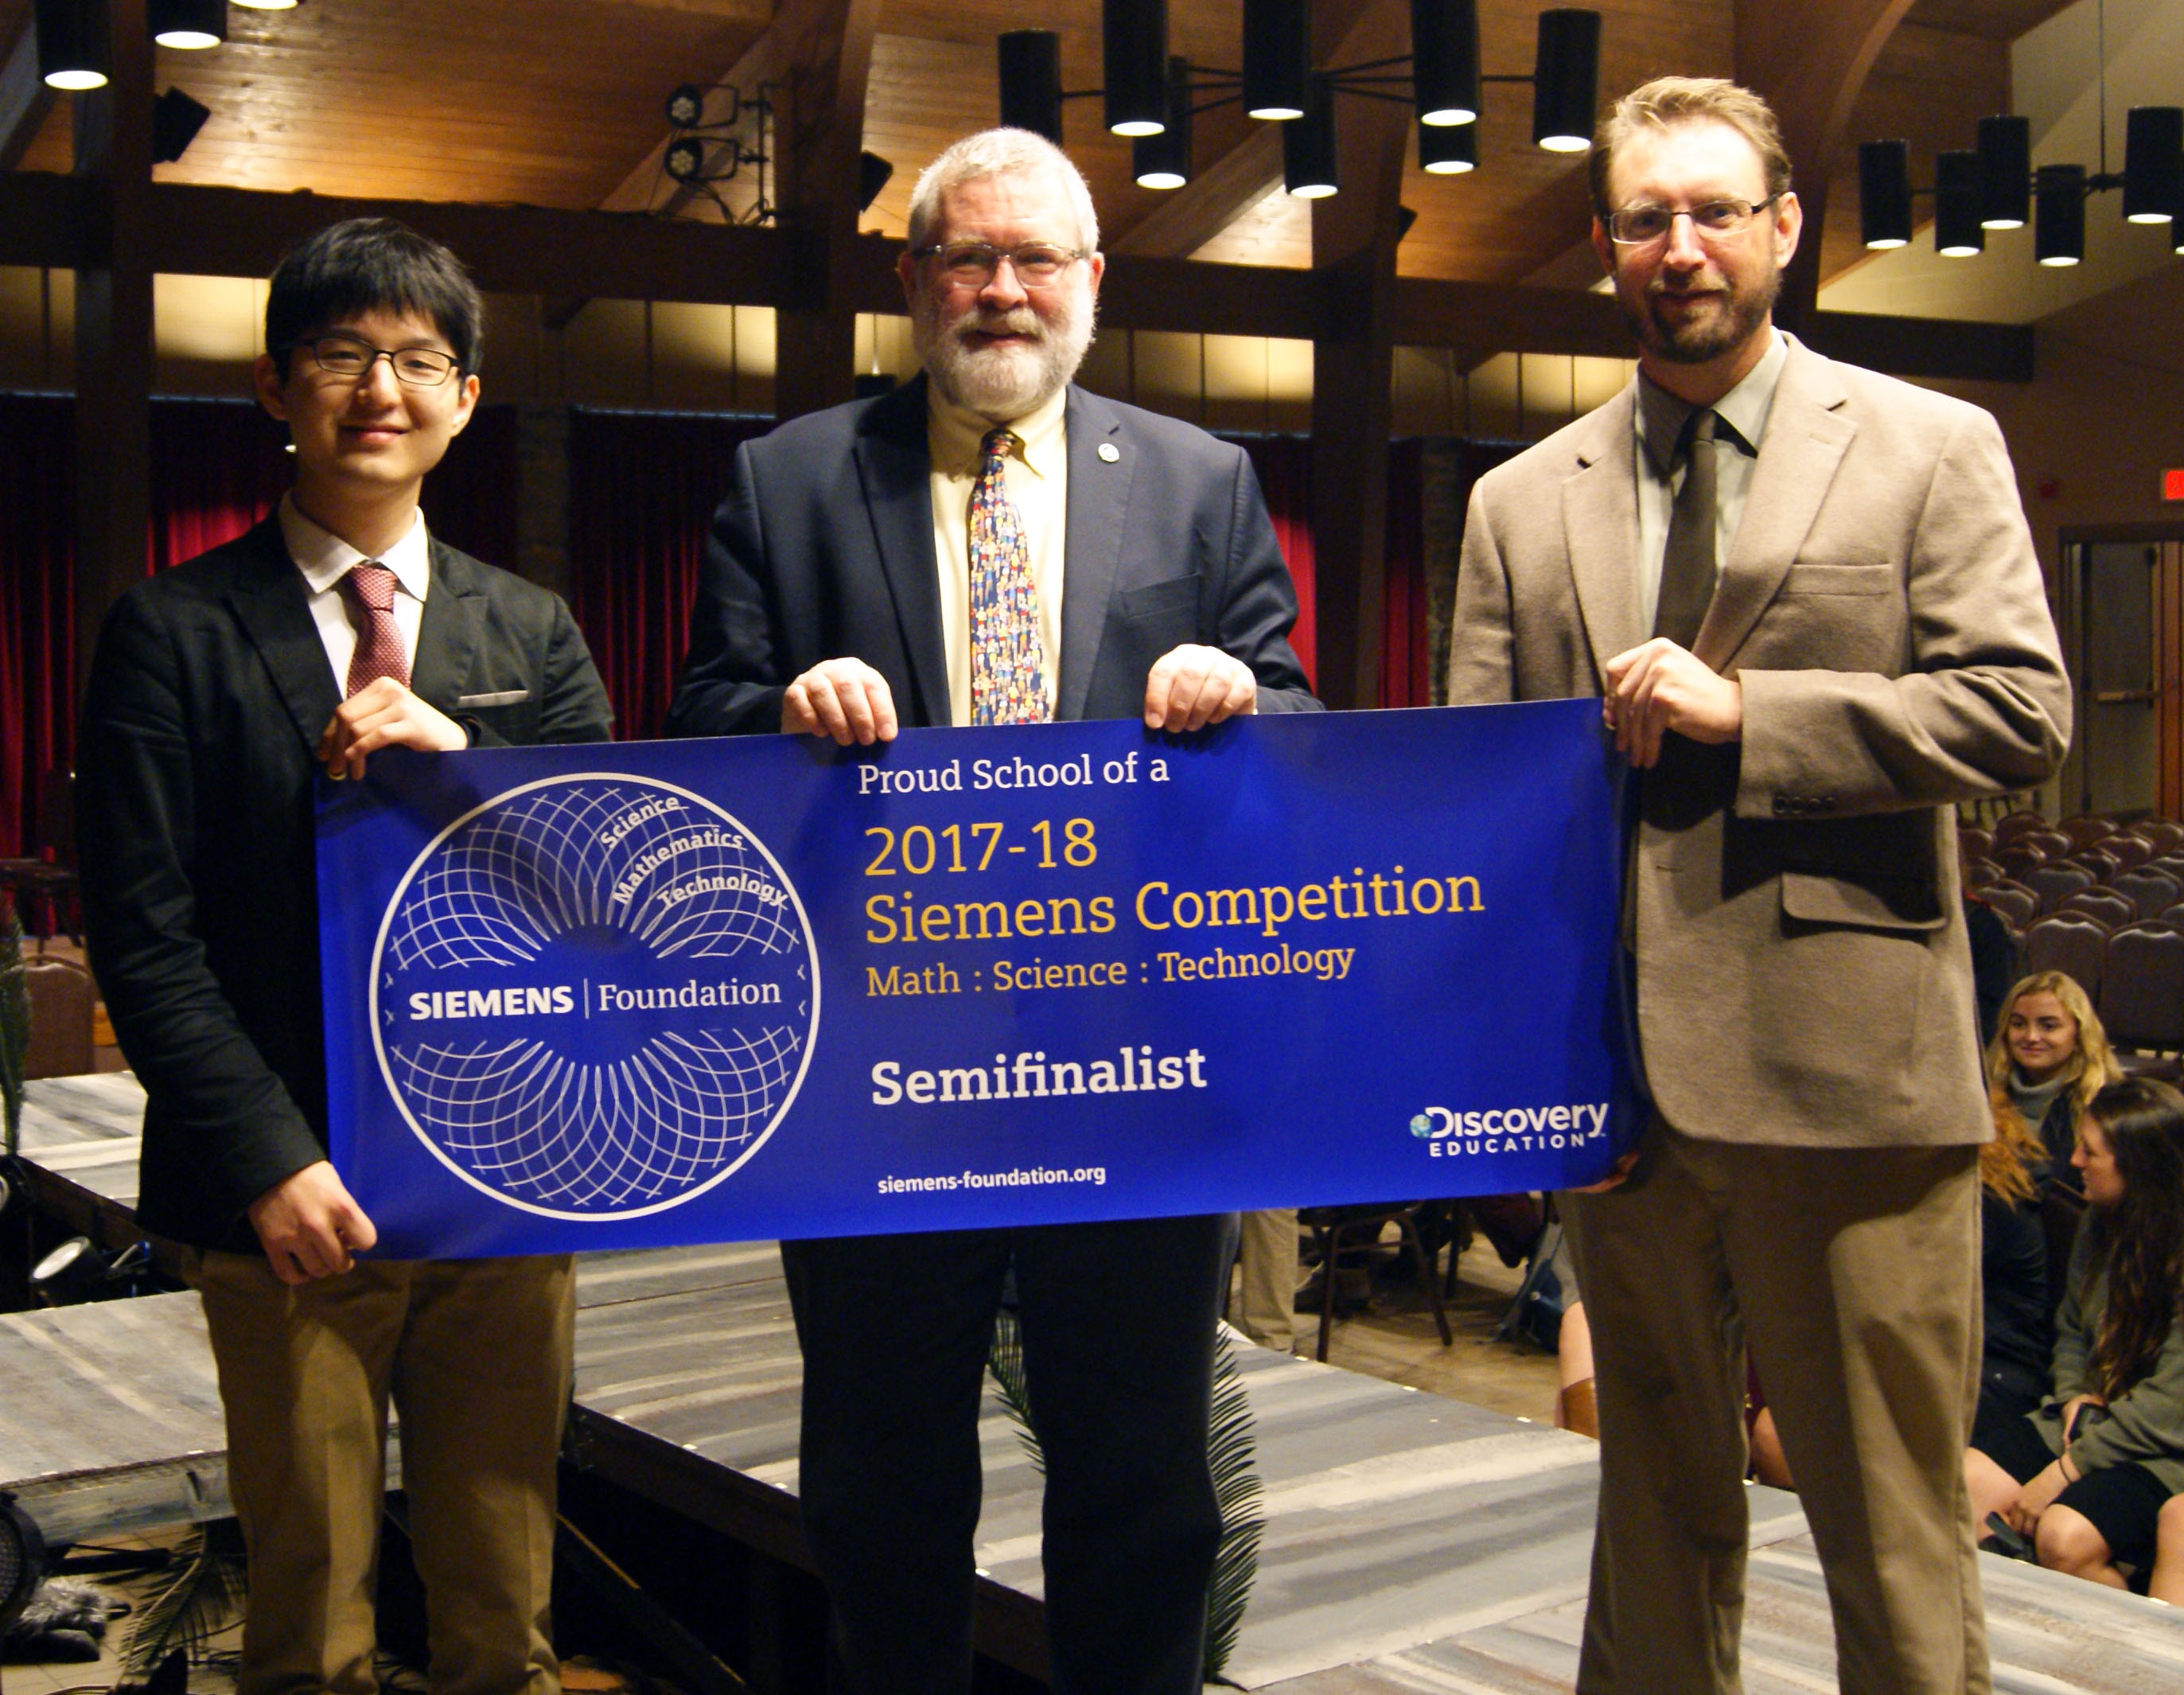 Sungwon Kim with Semifinalist Banner